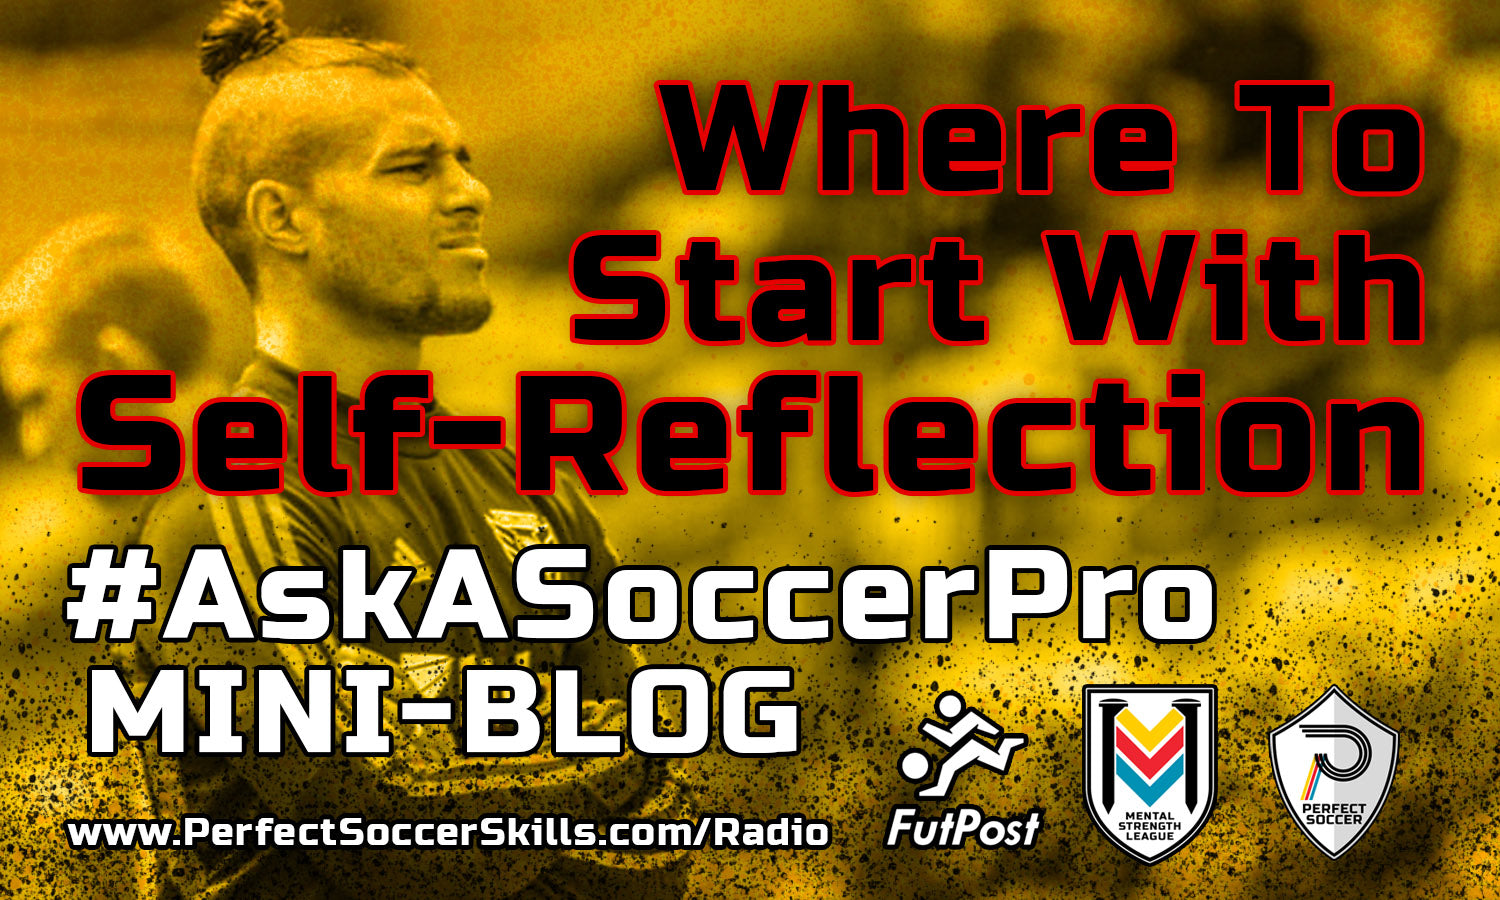 Where To Start With Self-Reflection #AskASoccerPro